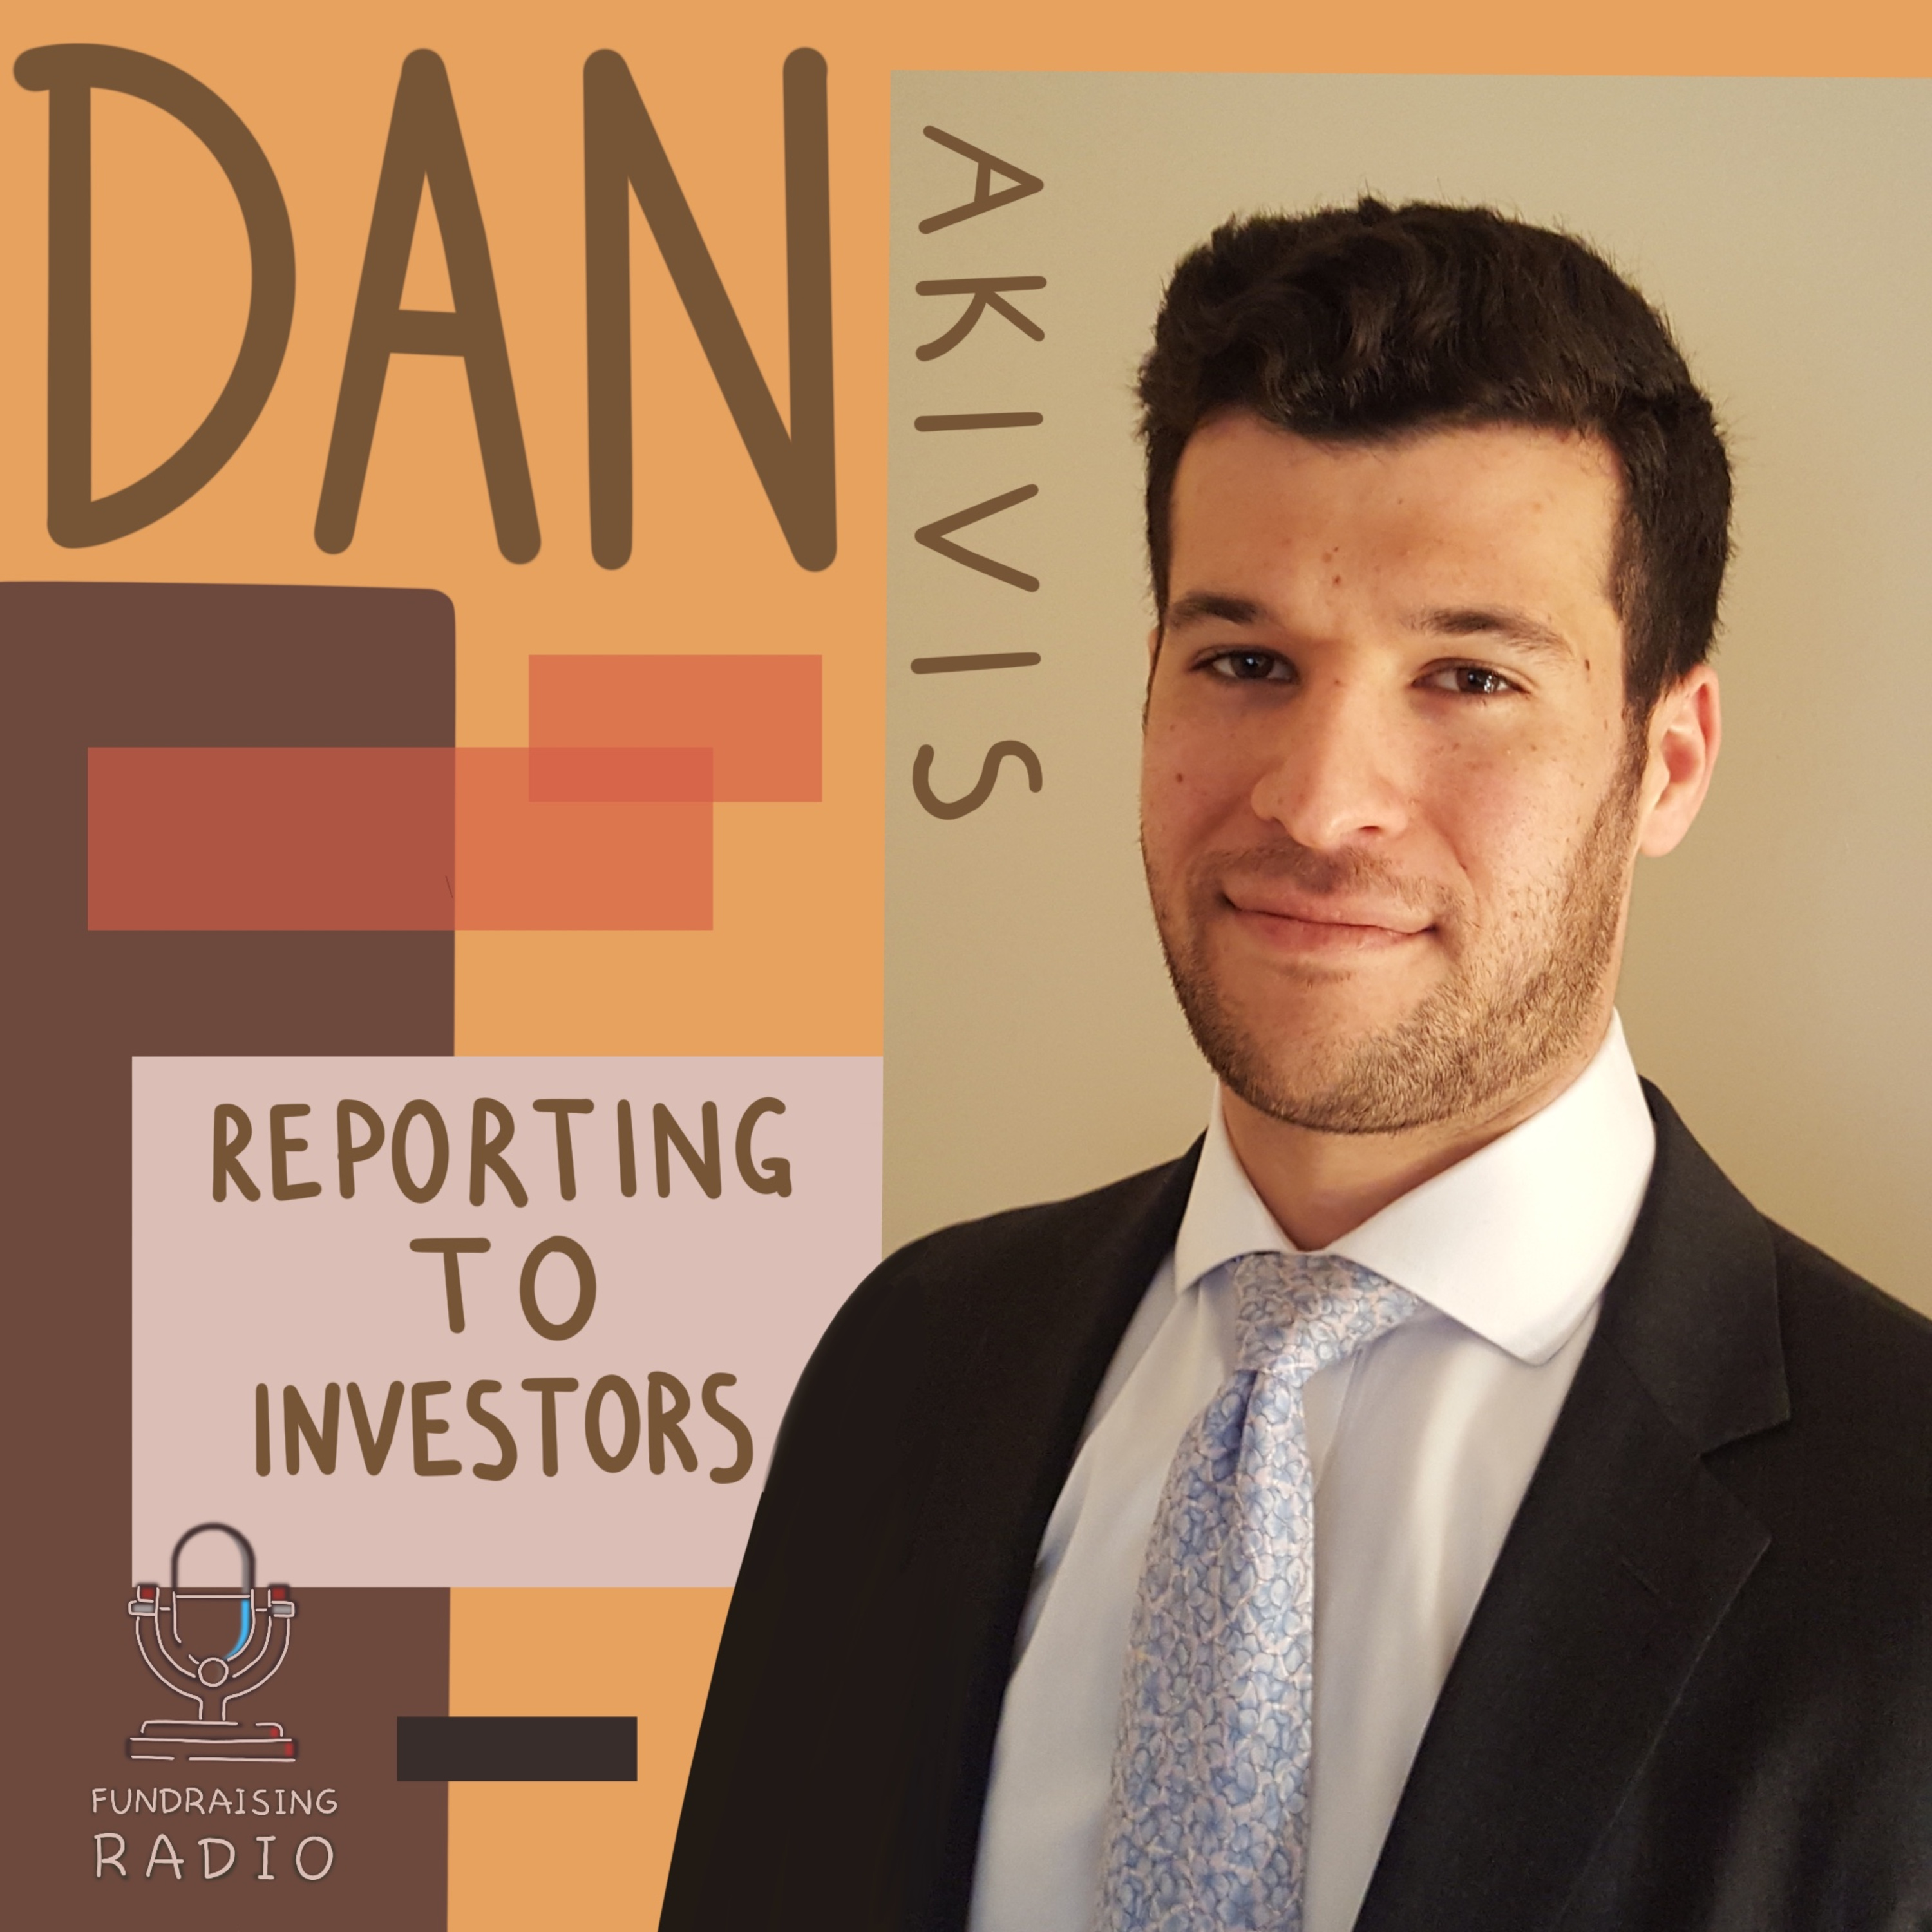 How to report to your investors and to prospect investors? By Dan Akivis.